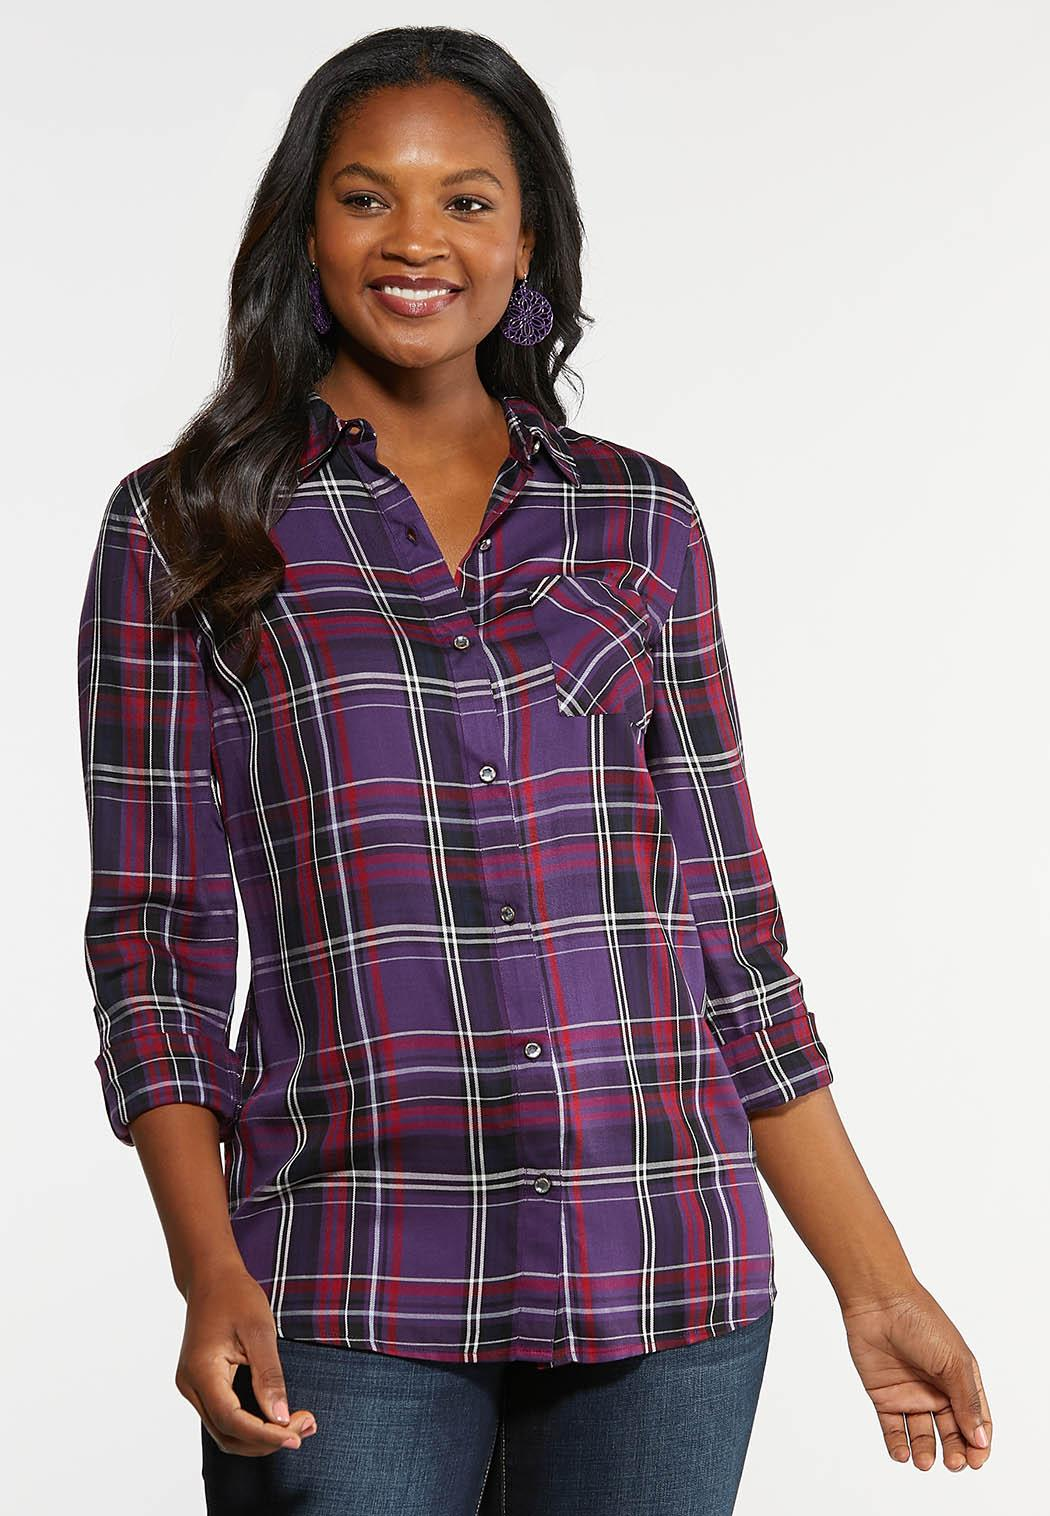 Bling Plaid Top